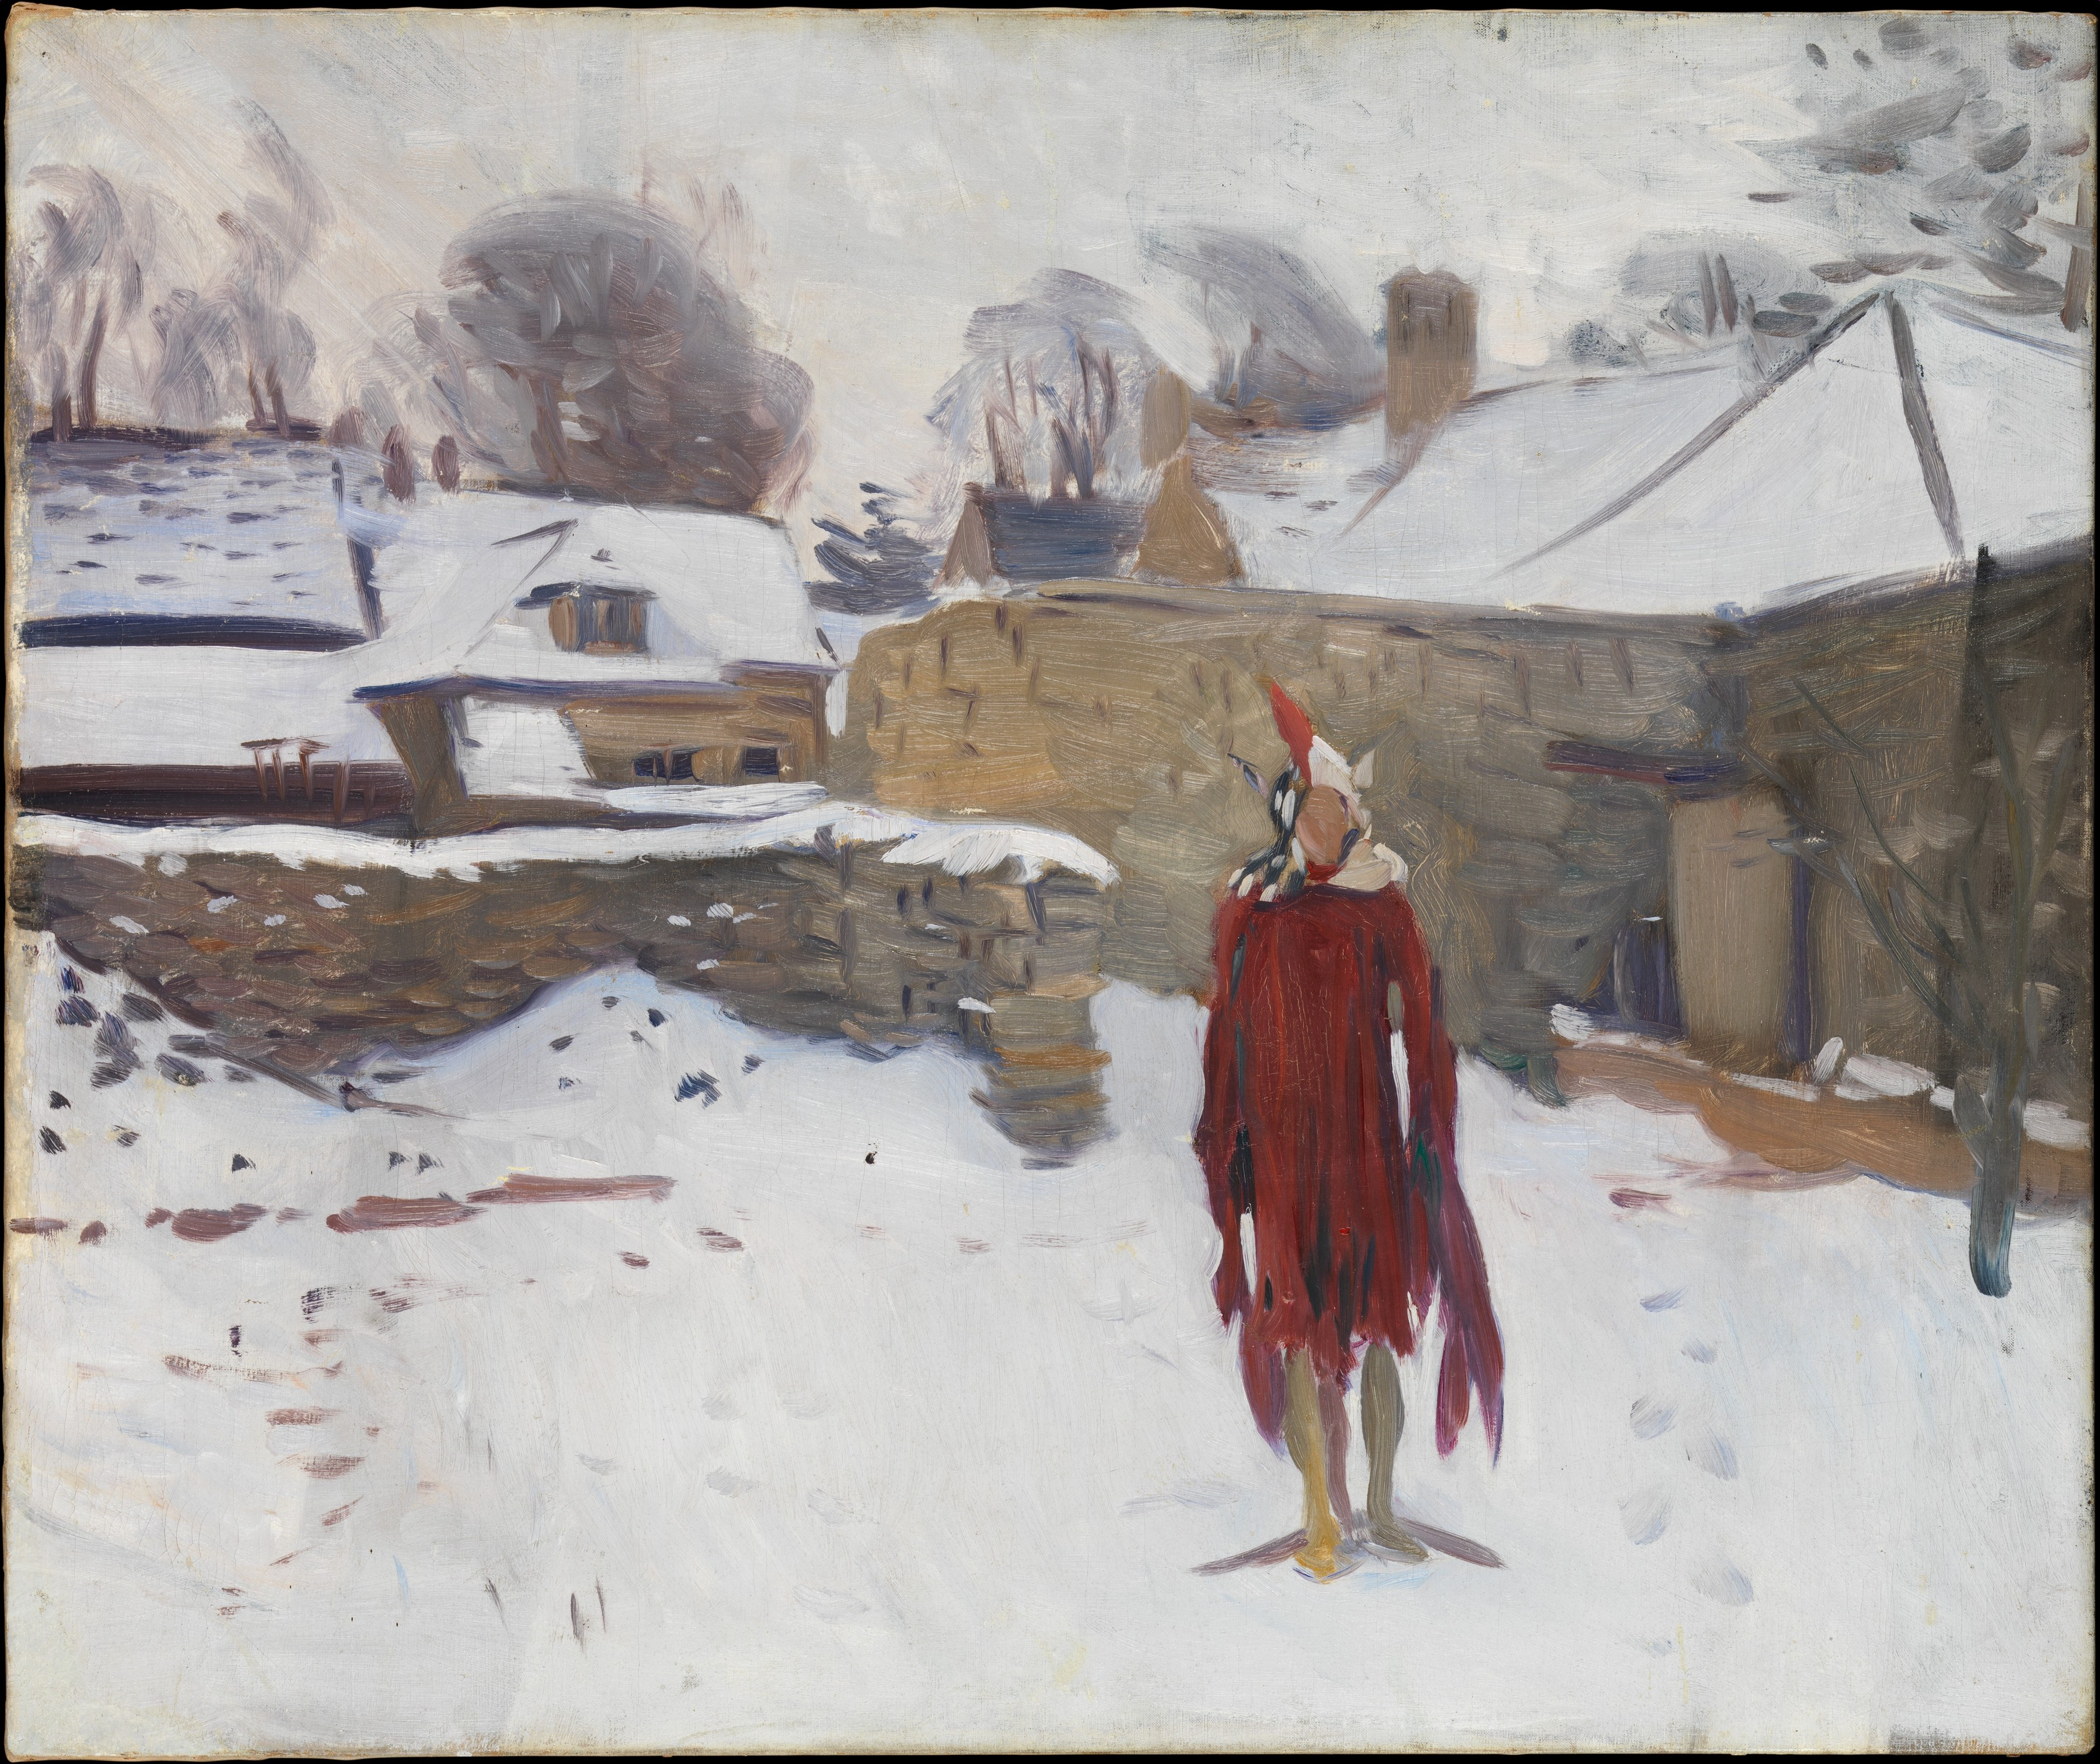 Mannikin in the Snow